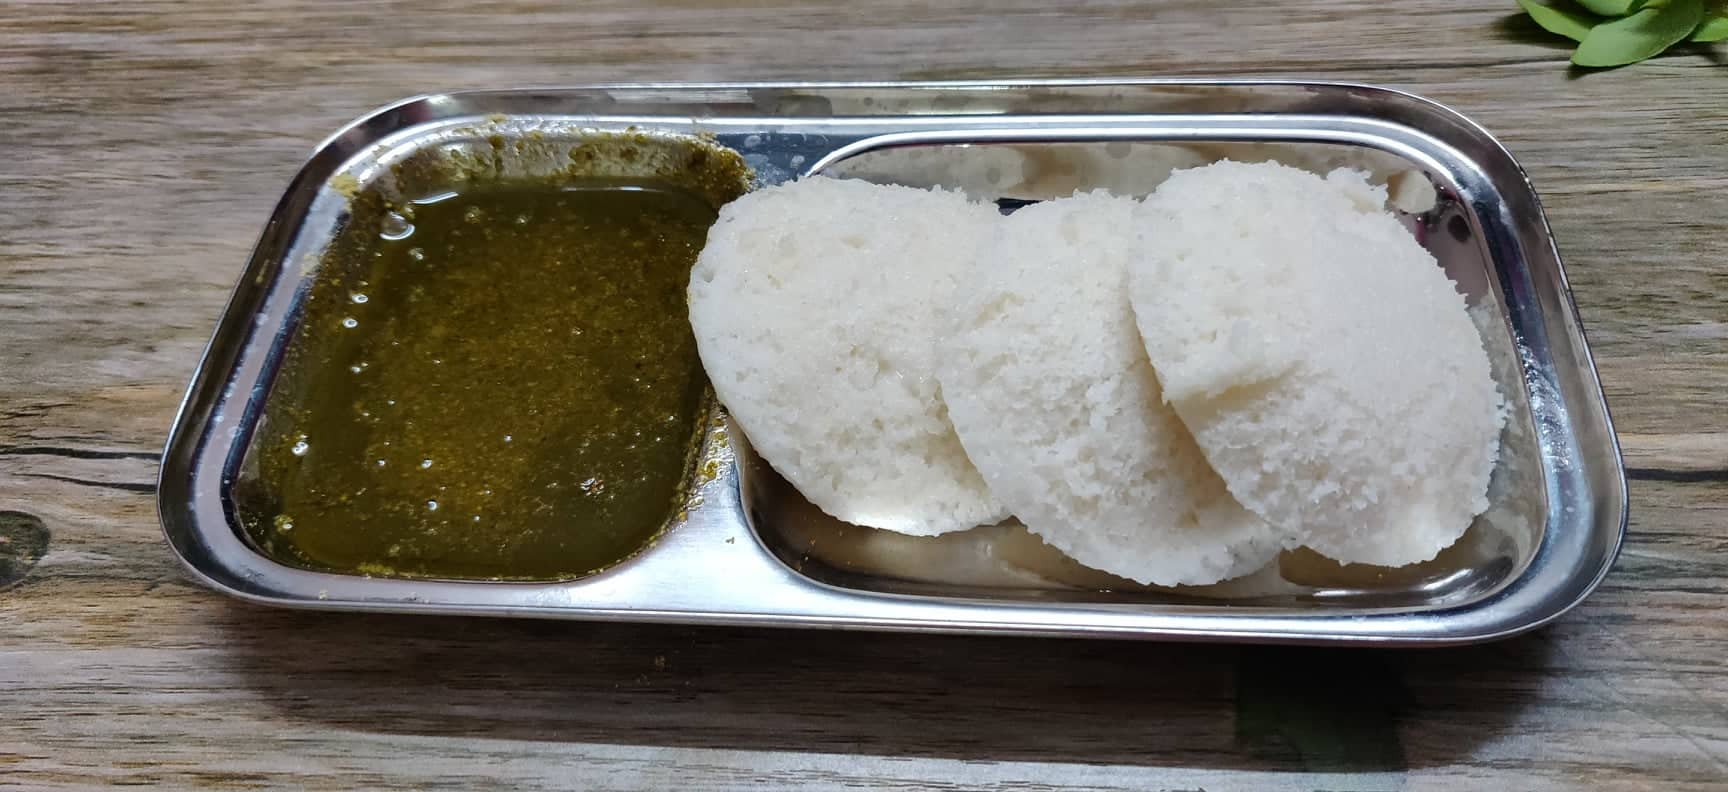 curry_leaves_idli_podi - 72912676_562625471211197_73693594325614592_n